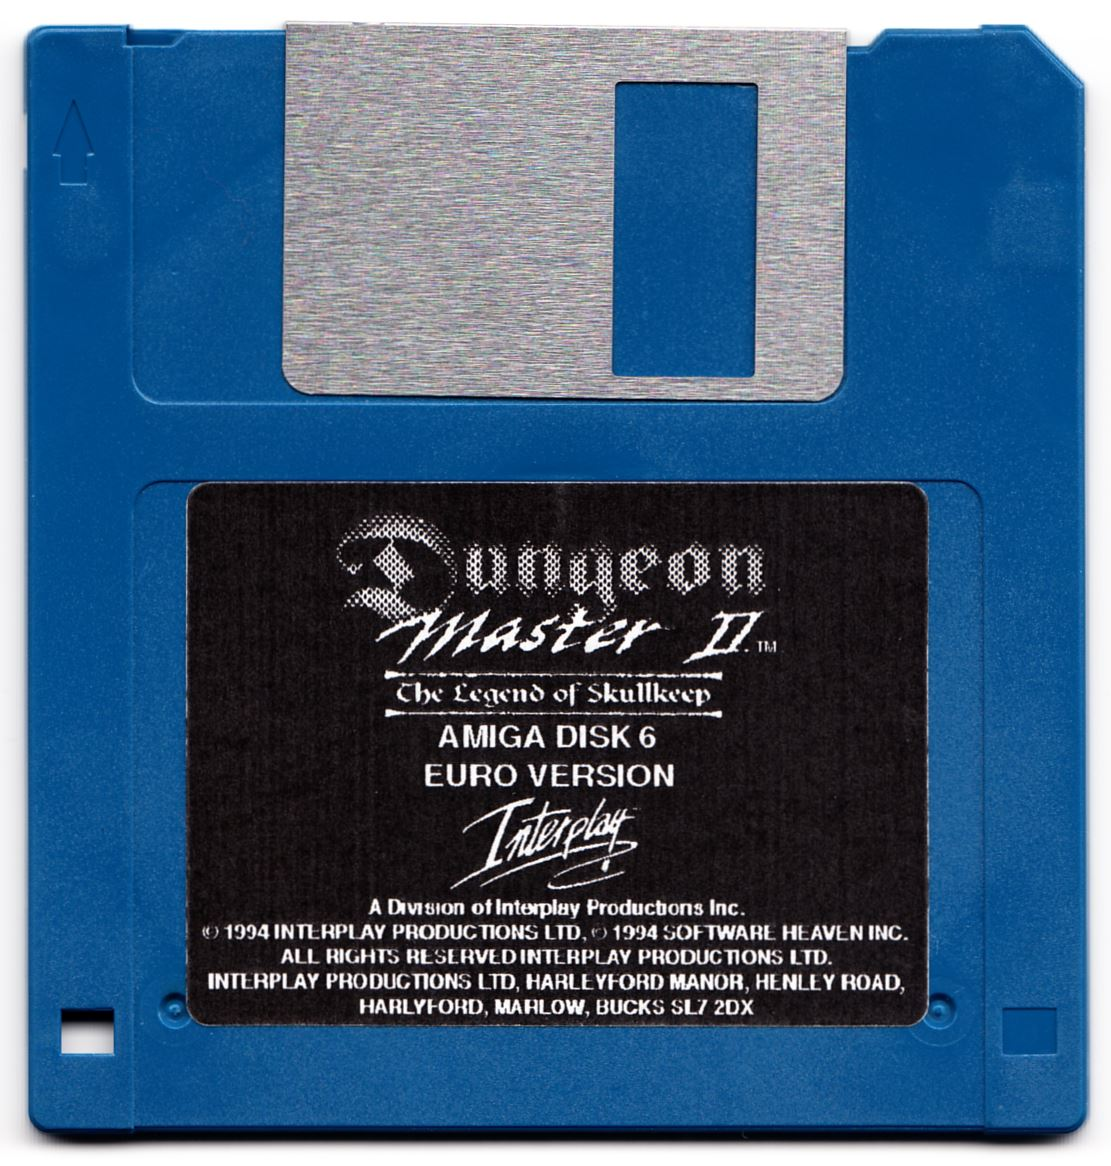 Game - Dungeon Master II - UK - Amiga Alternate - Disk 6 - Front - Scan